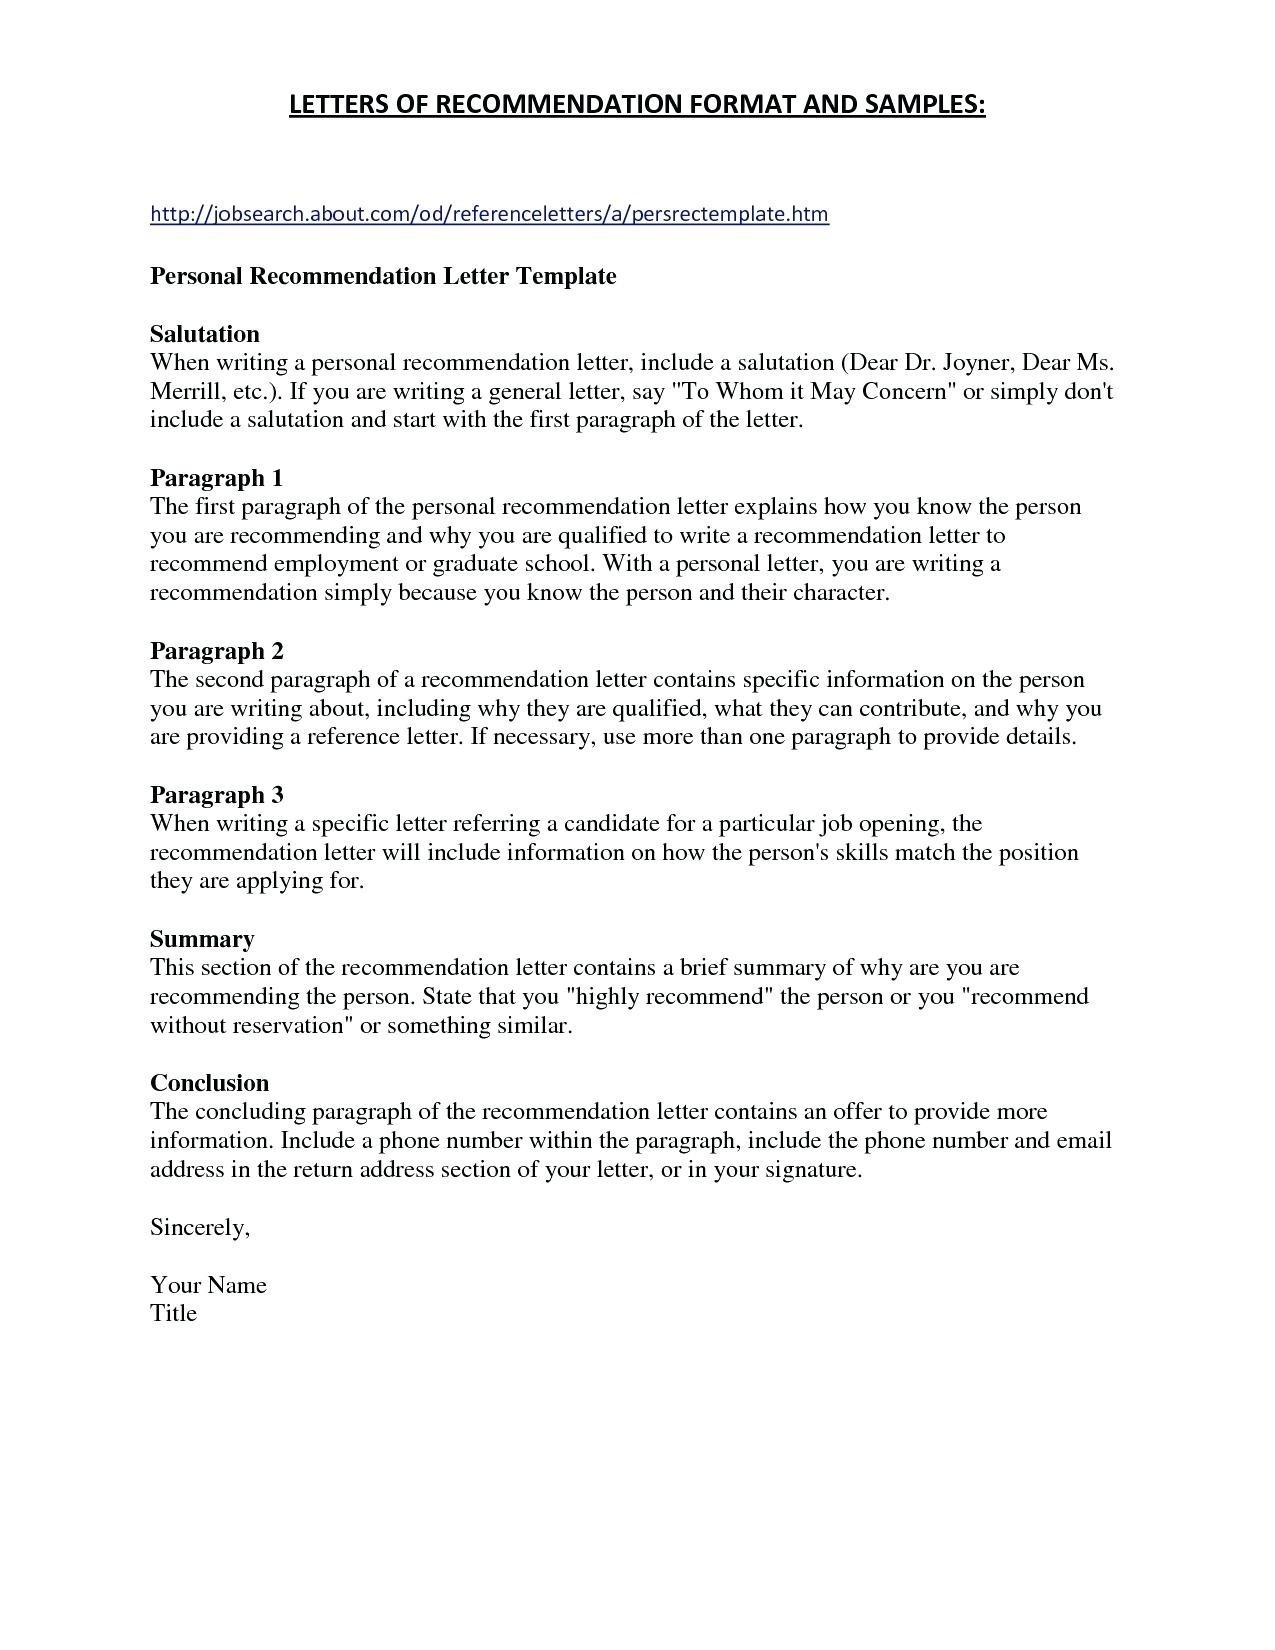 Business Reference Letter Template - Business Re Mendation Letter Template New to whom It May Concern